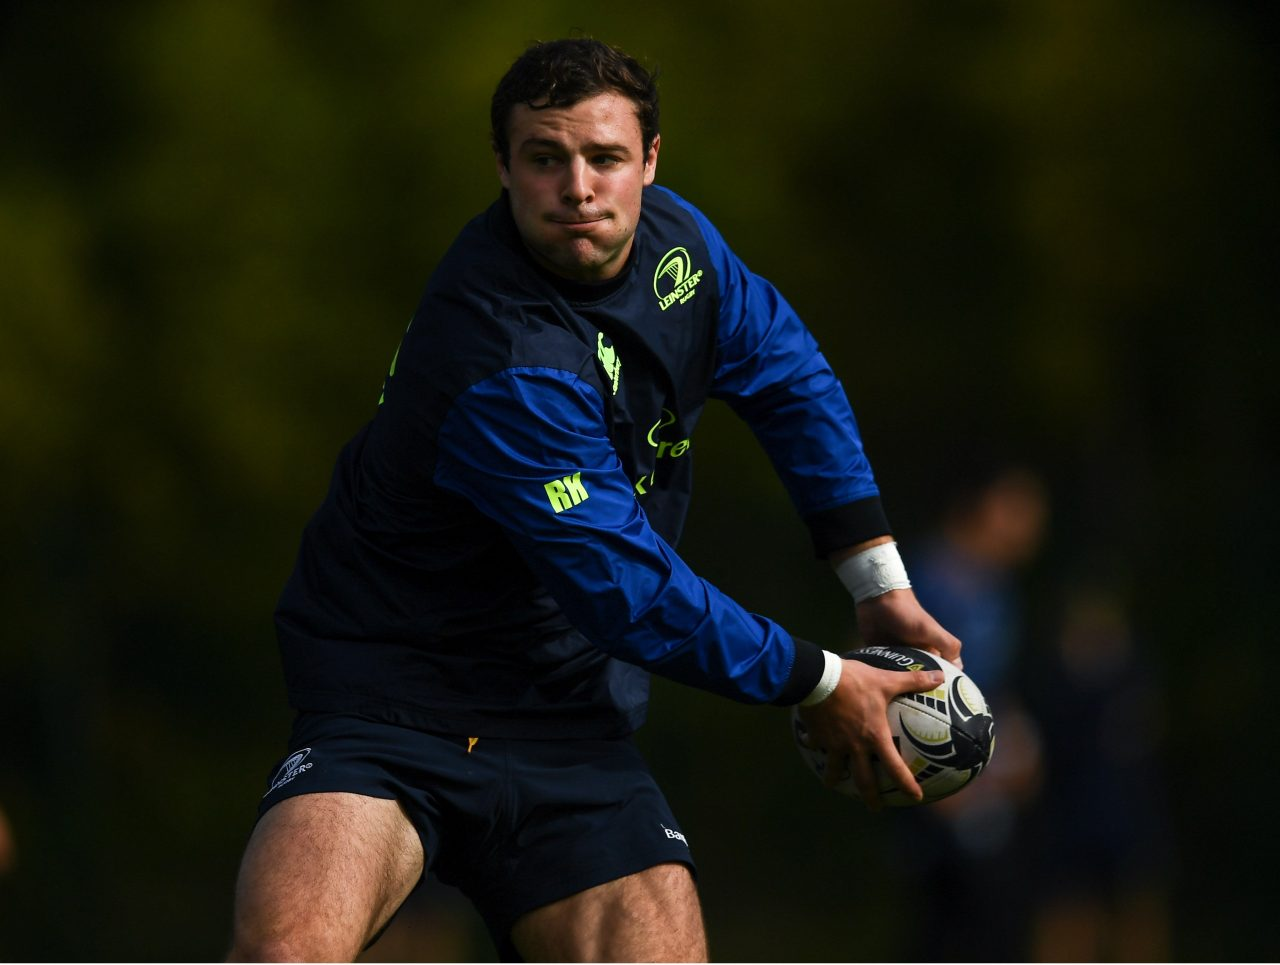 Lancaster Gives Injury Update Ahead of Munster Clash